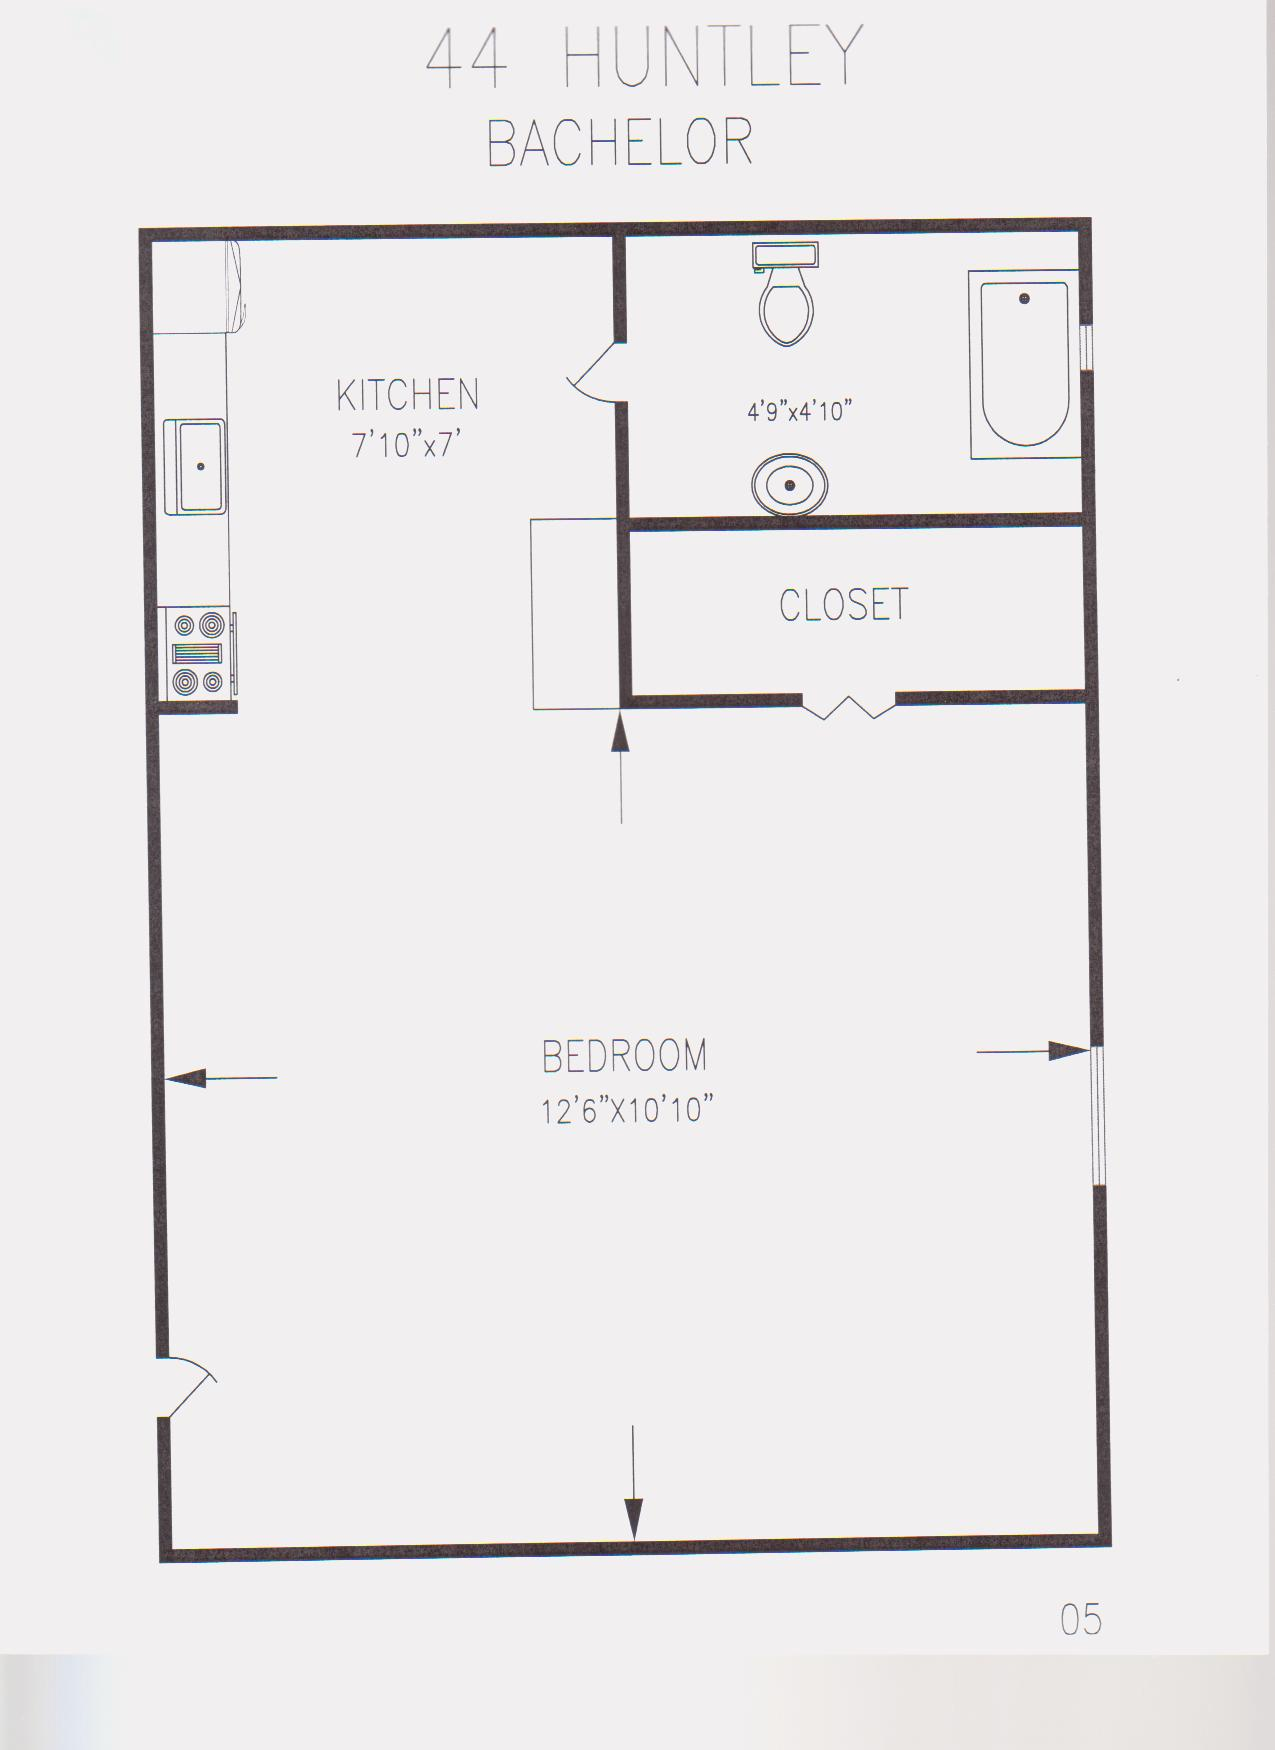 44 huntley street mercedes homes inc for Bach floor plans